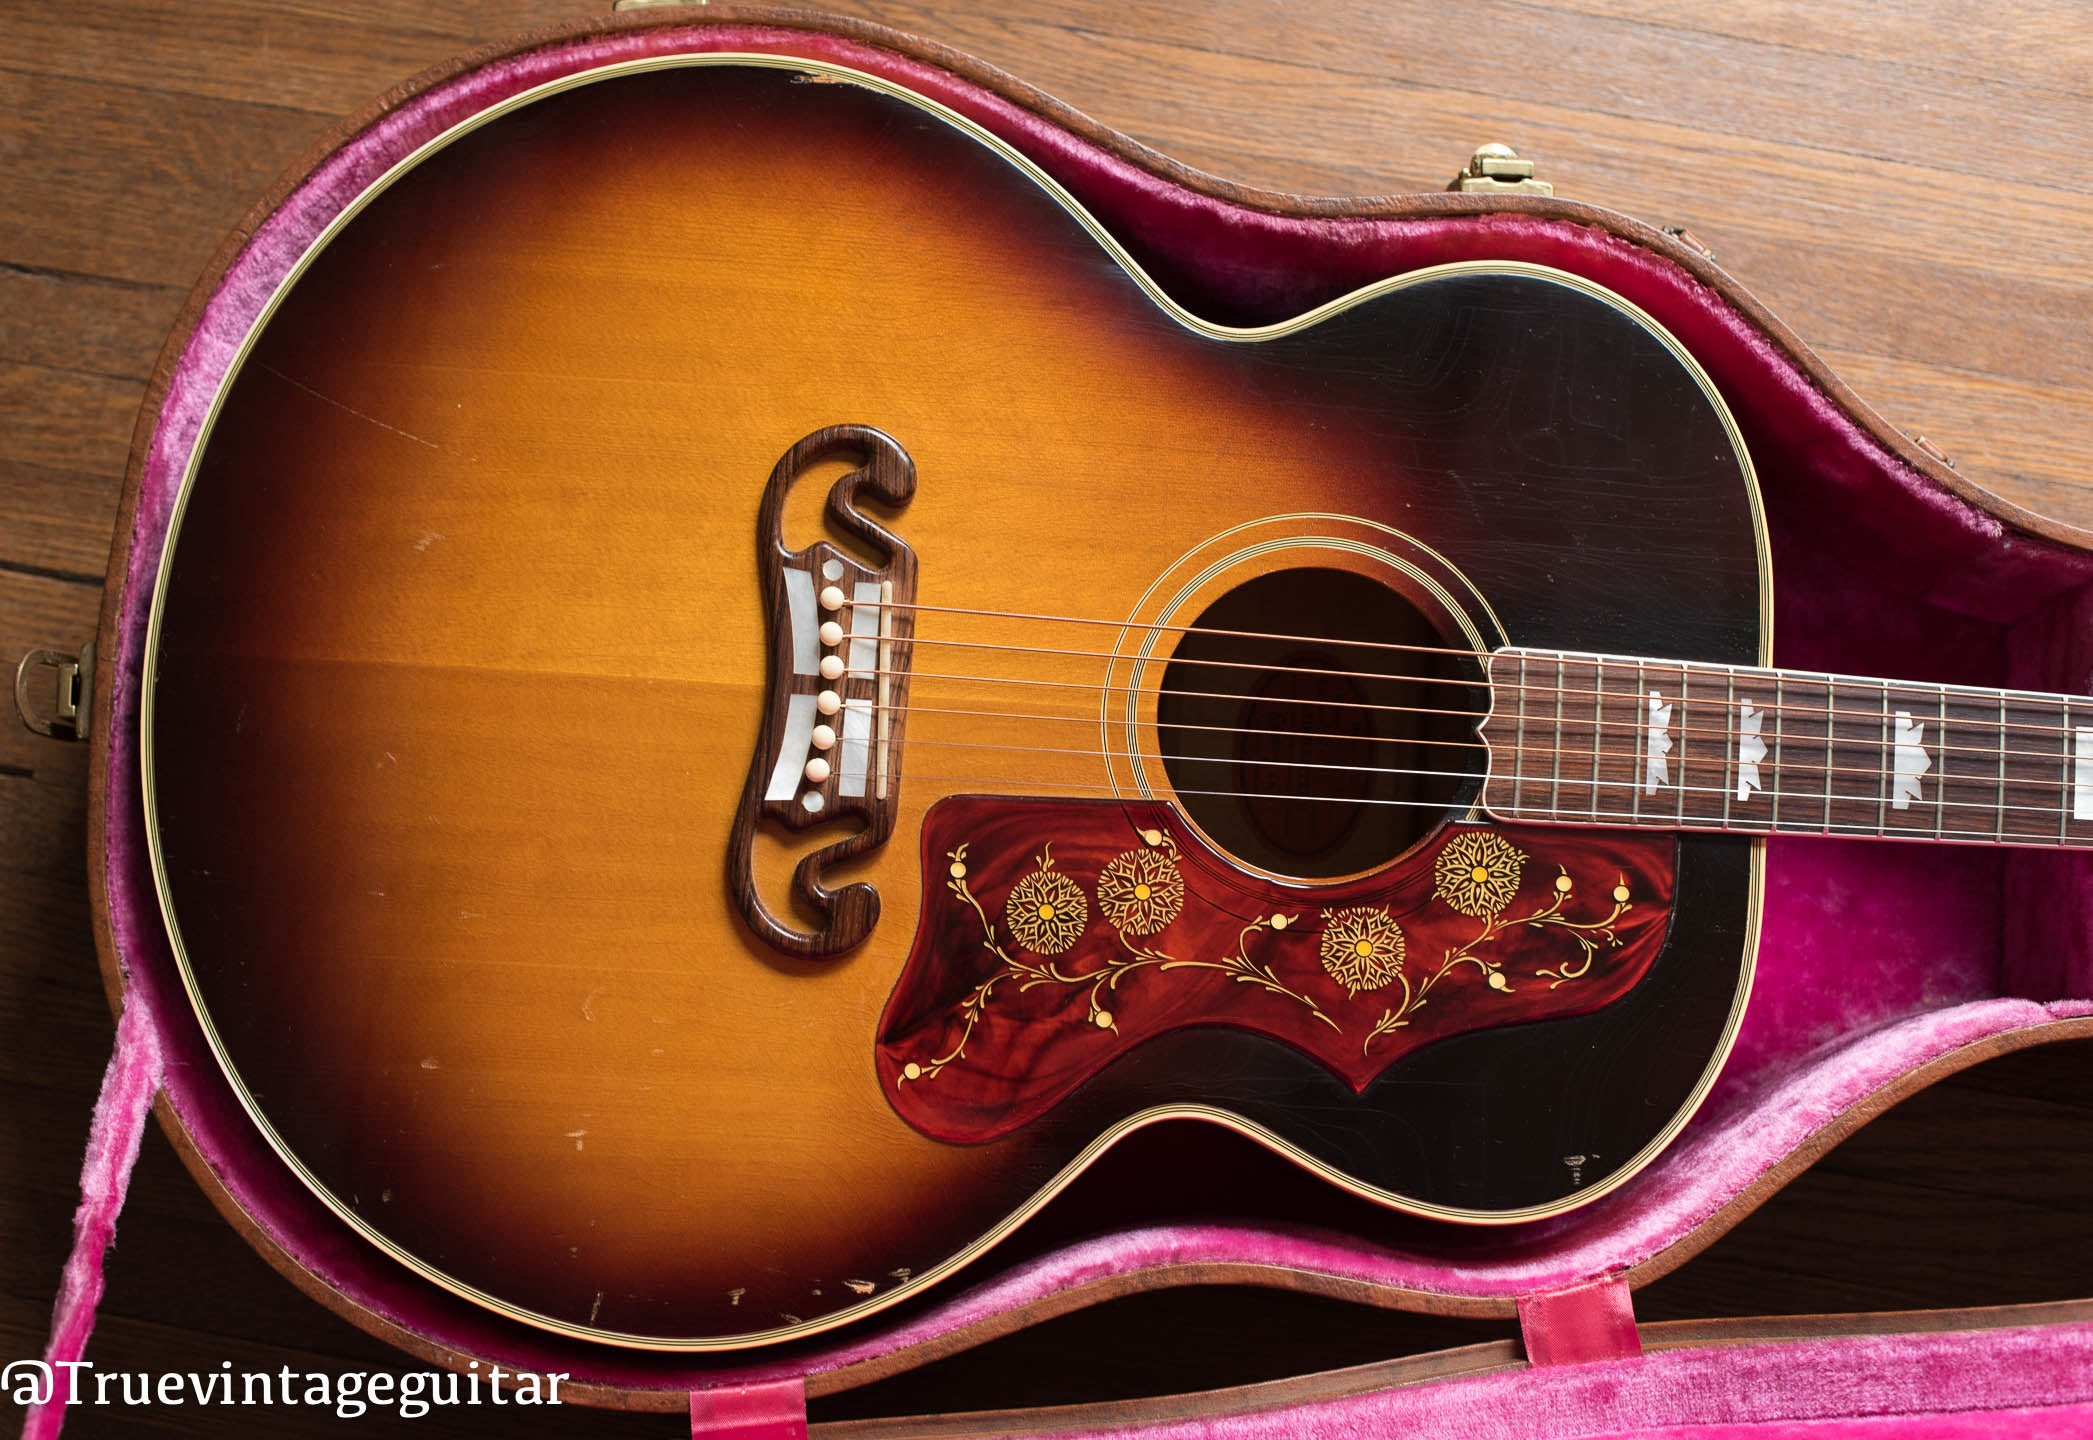 Where to sell Gibson acoustic guitar, Gibson guitar buyer